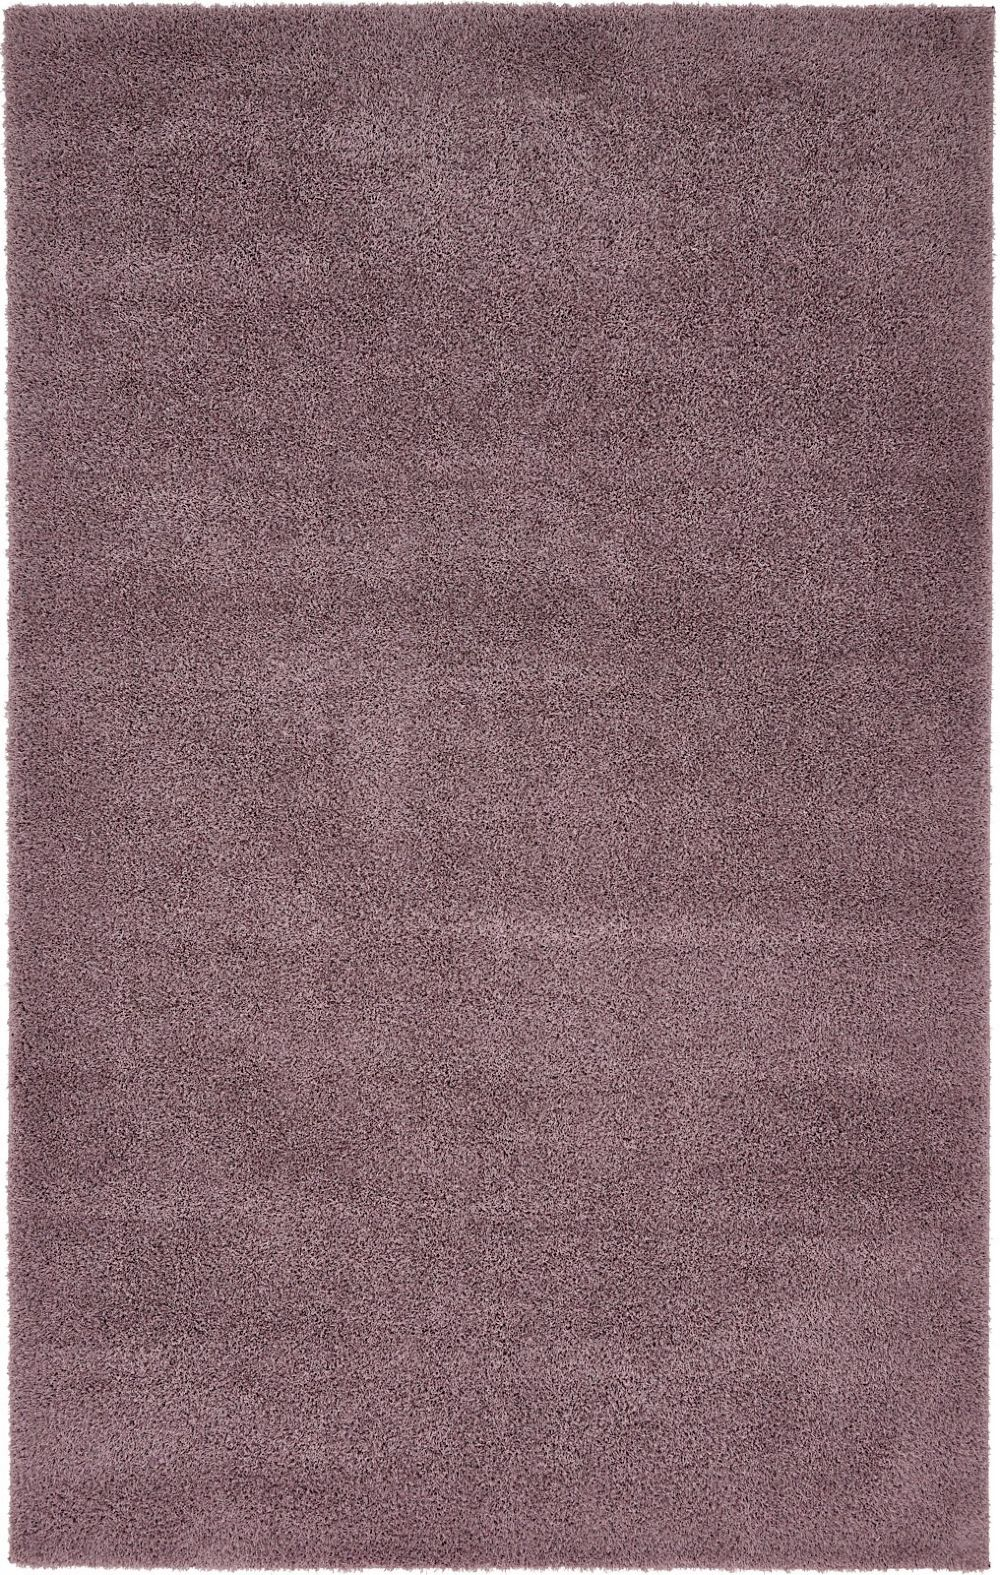 rugpal paramount shag area rug collection